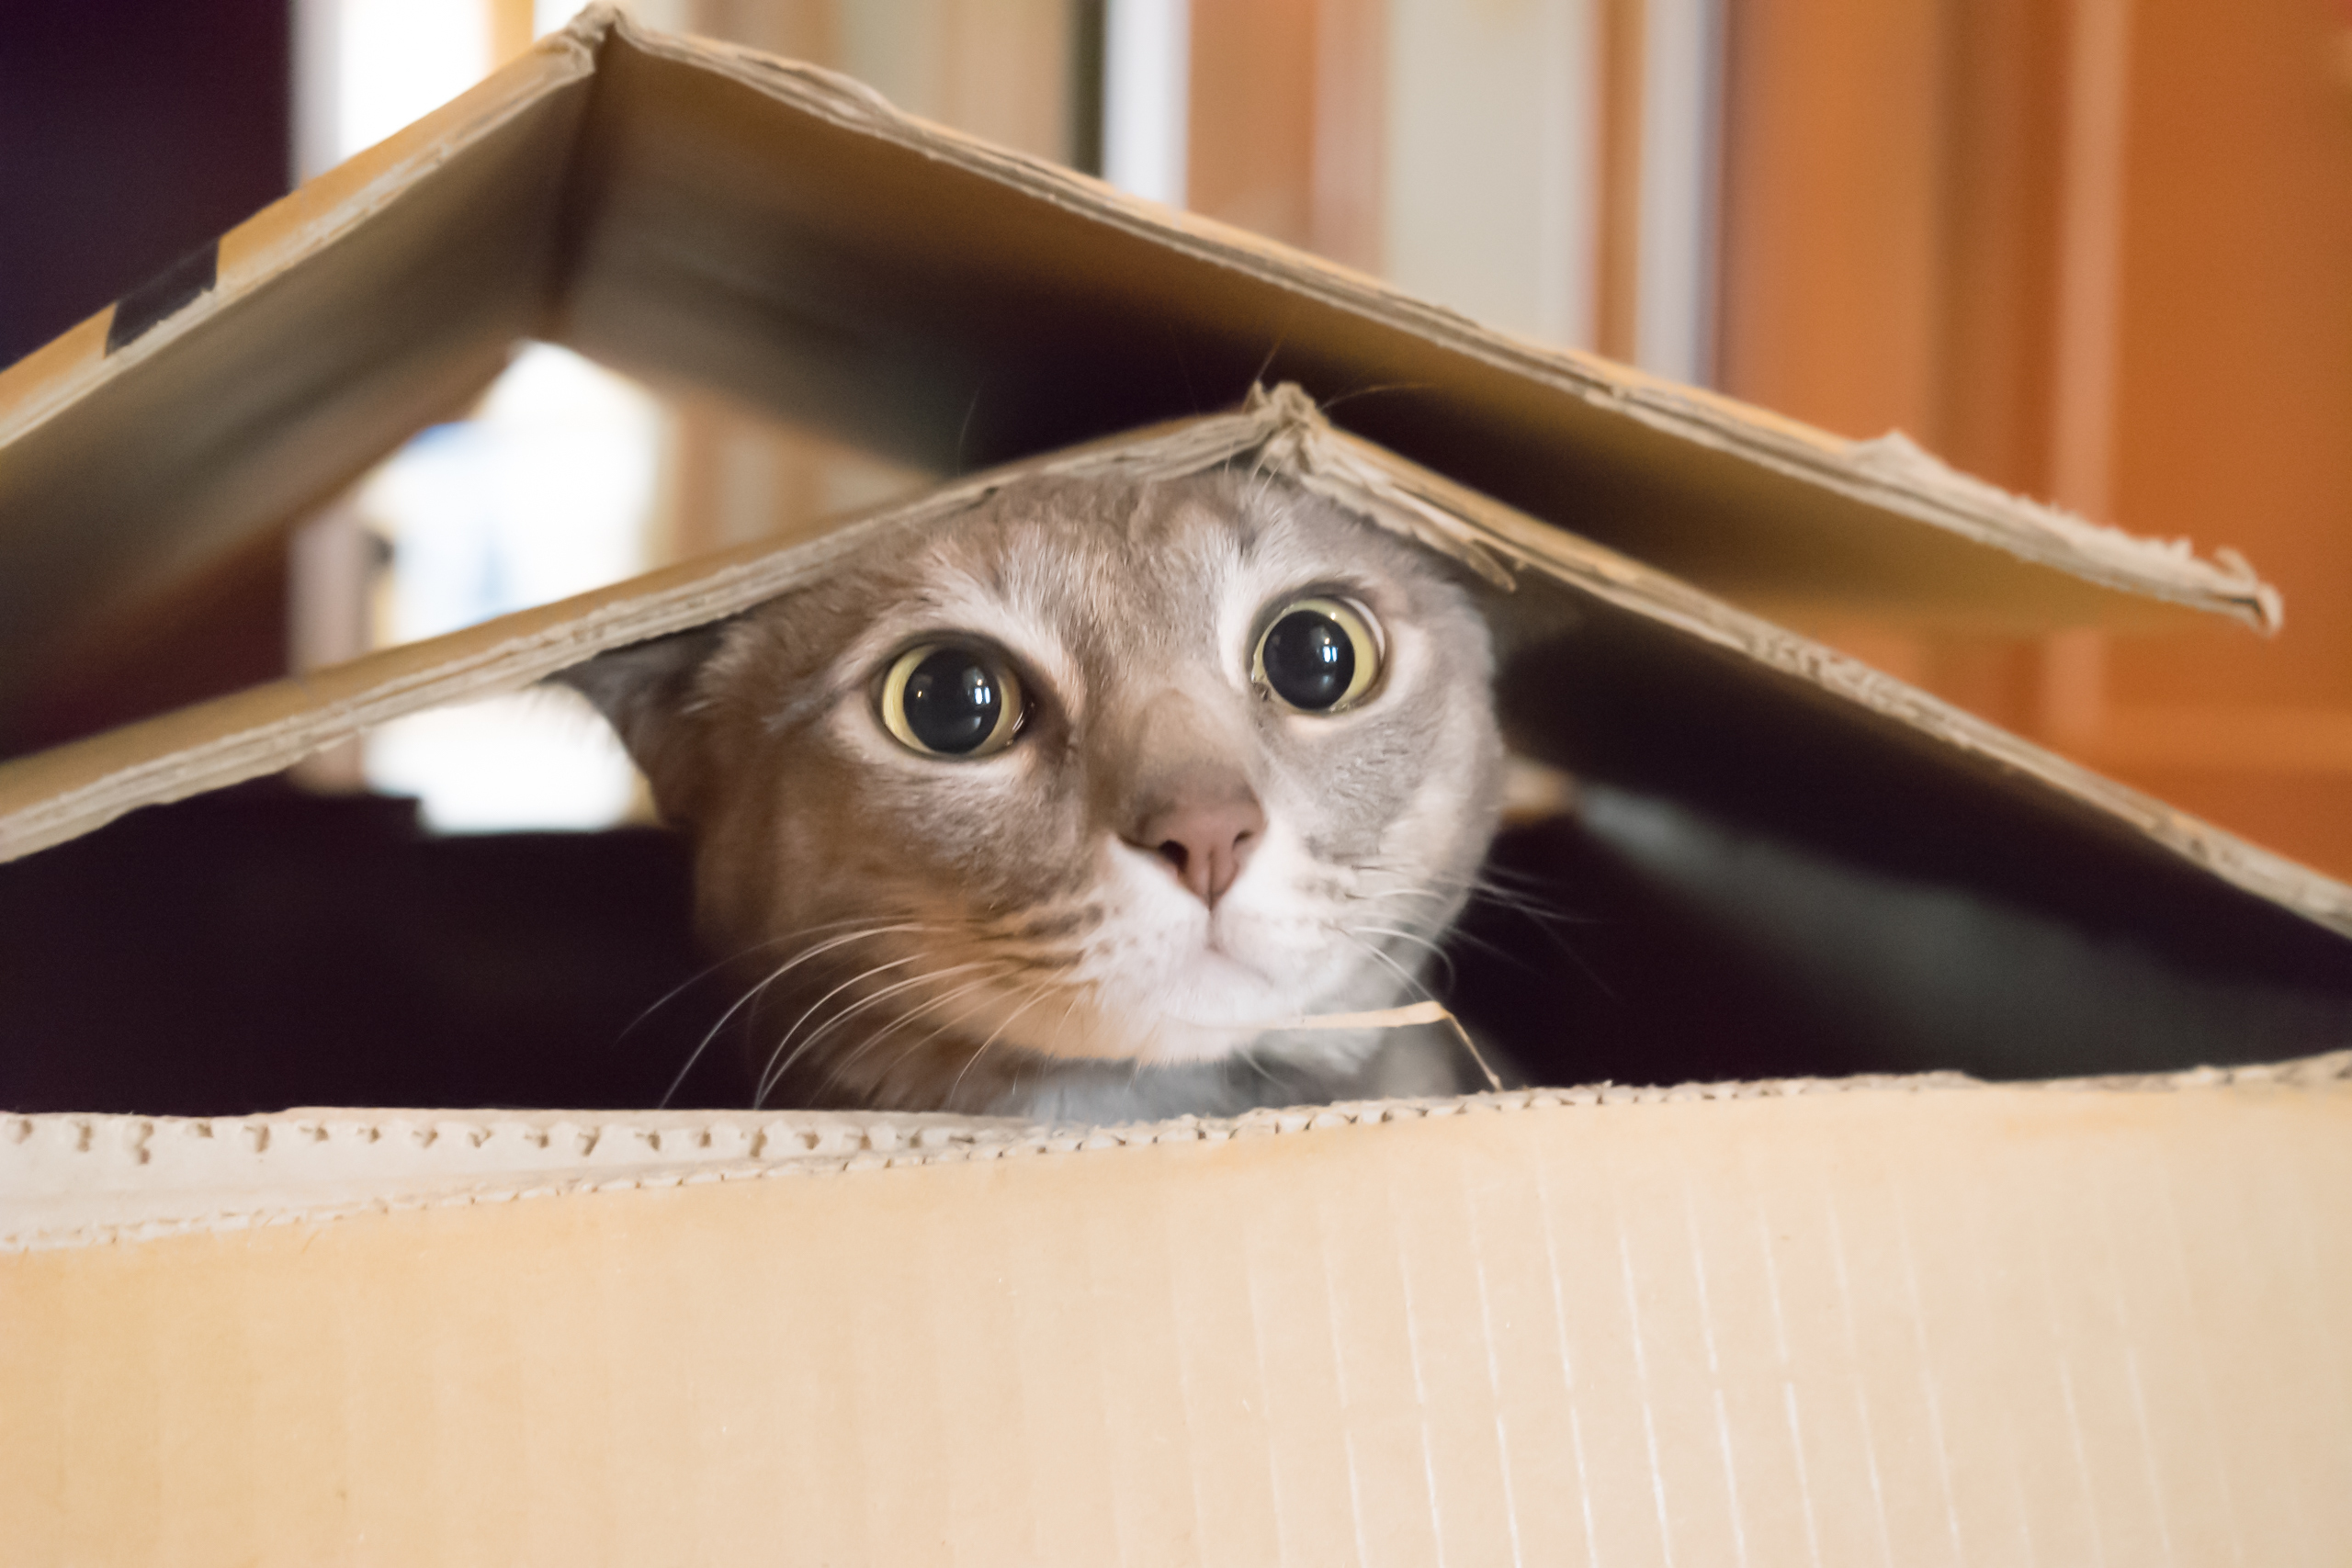 Cats seek out the comfort that a cardboard box can afford and are drawn to small, den-like spaces where they can curl up and feel secure.